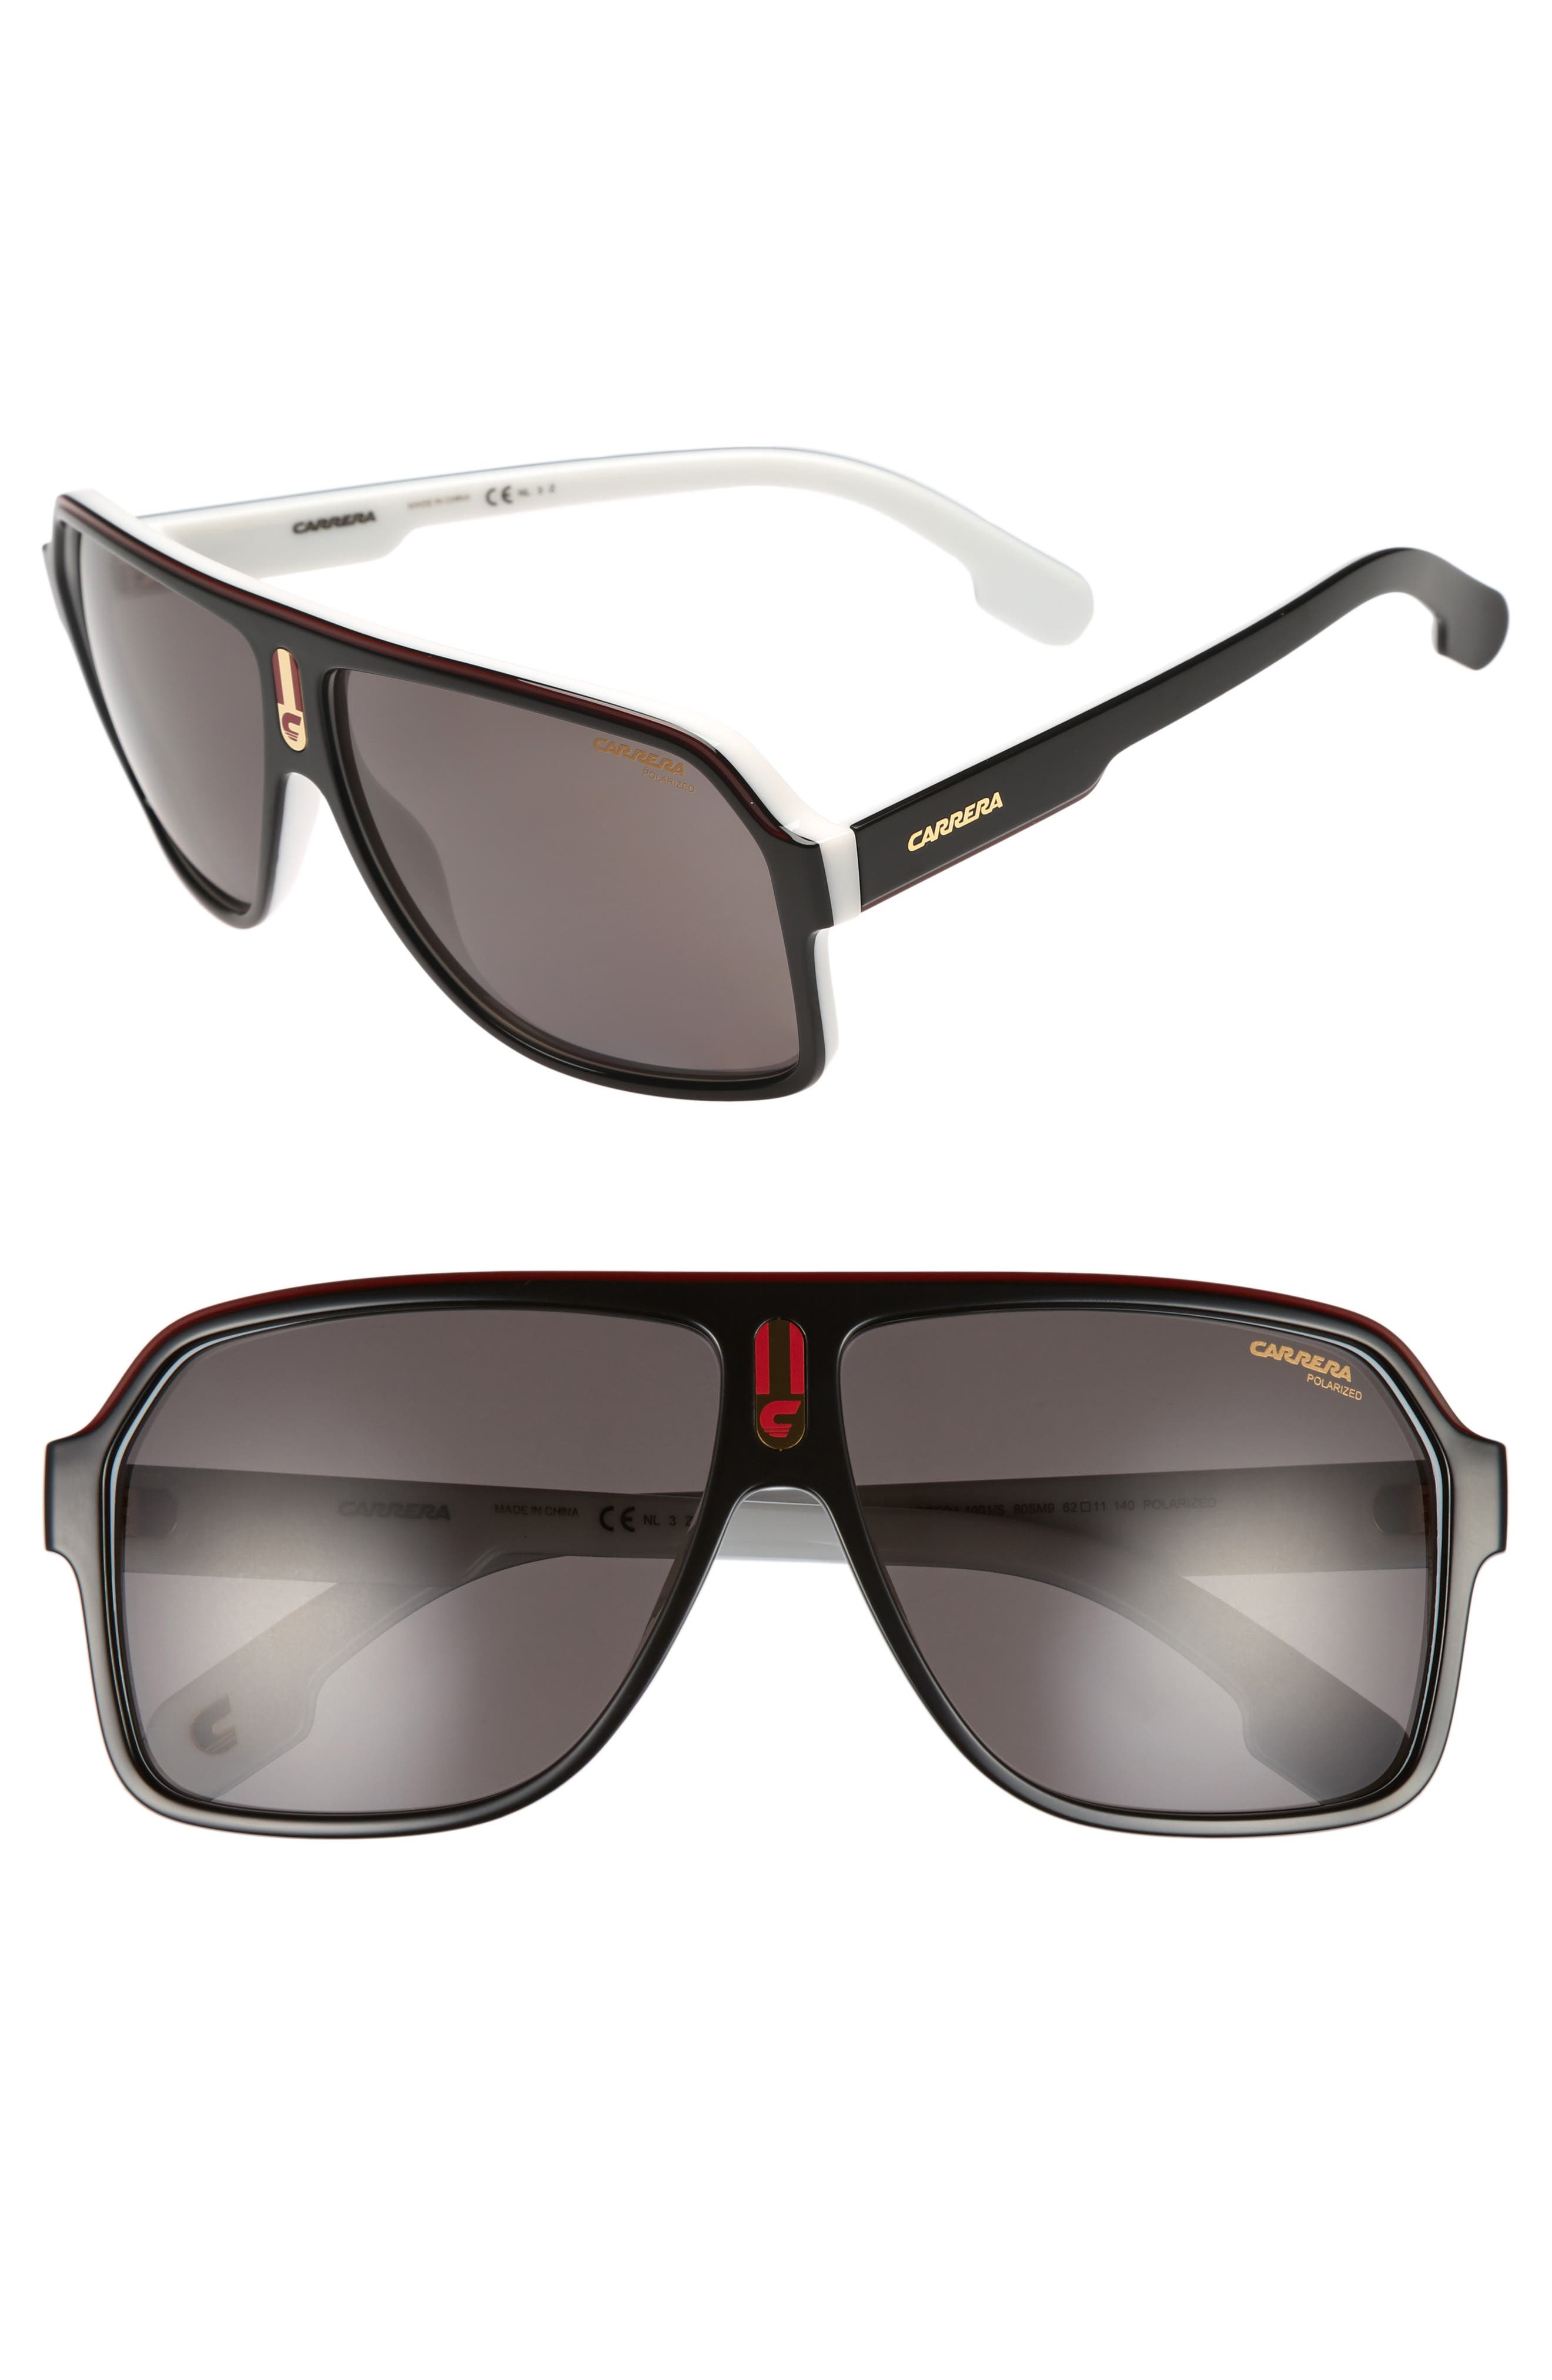 1001/S 62mm Sunglasses,                         Main,                         color, Black White/ Gray Polarized